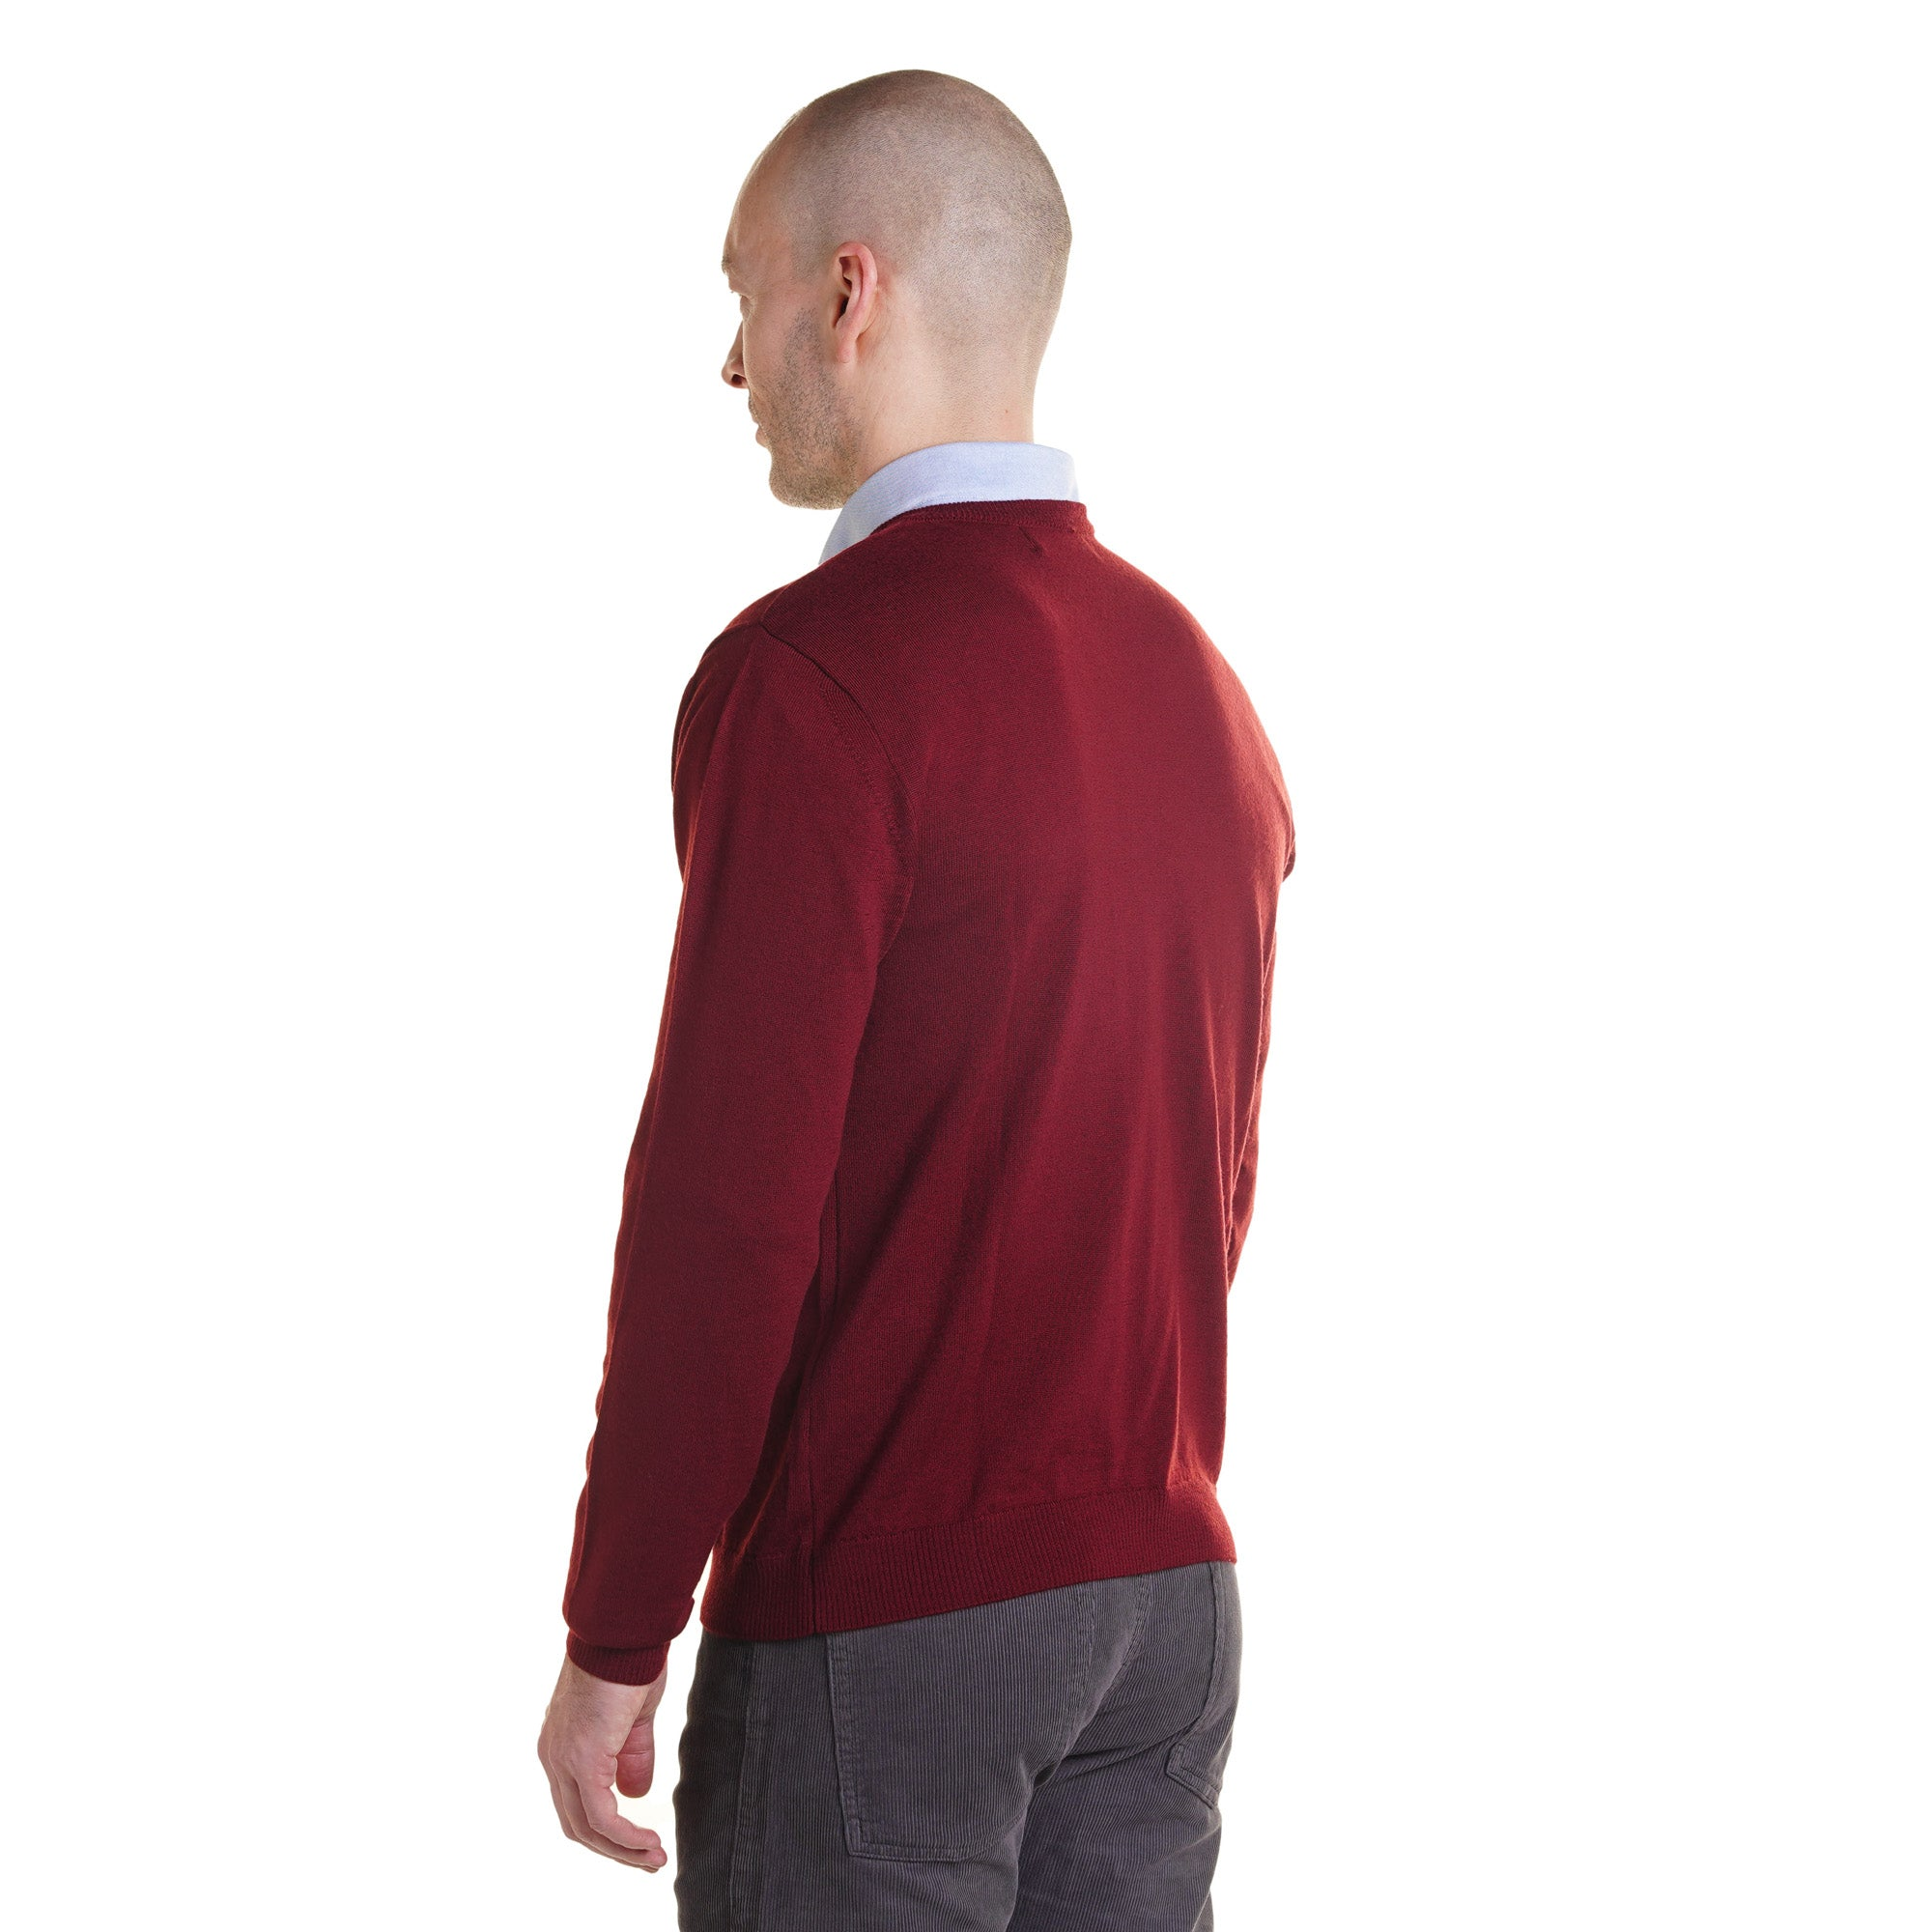 Zegna Merino Wool V Neck Sweaters - Burgundy